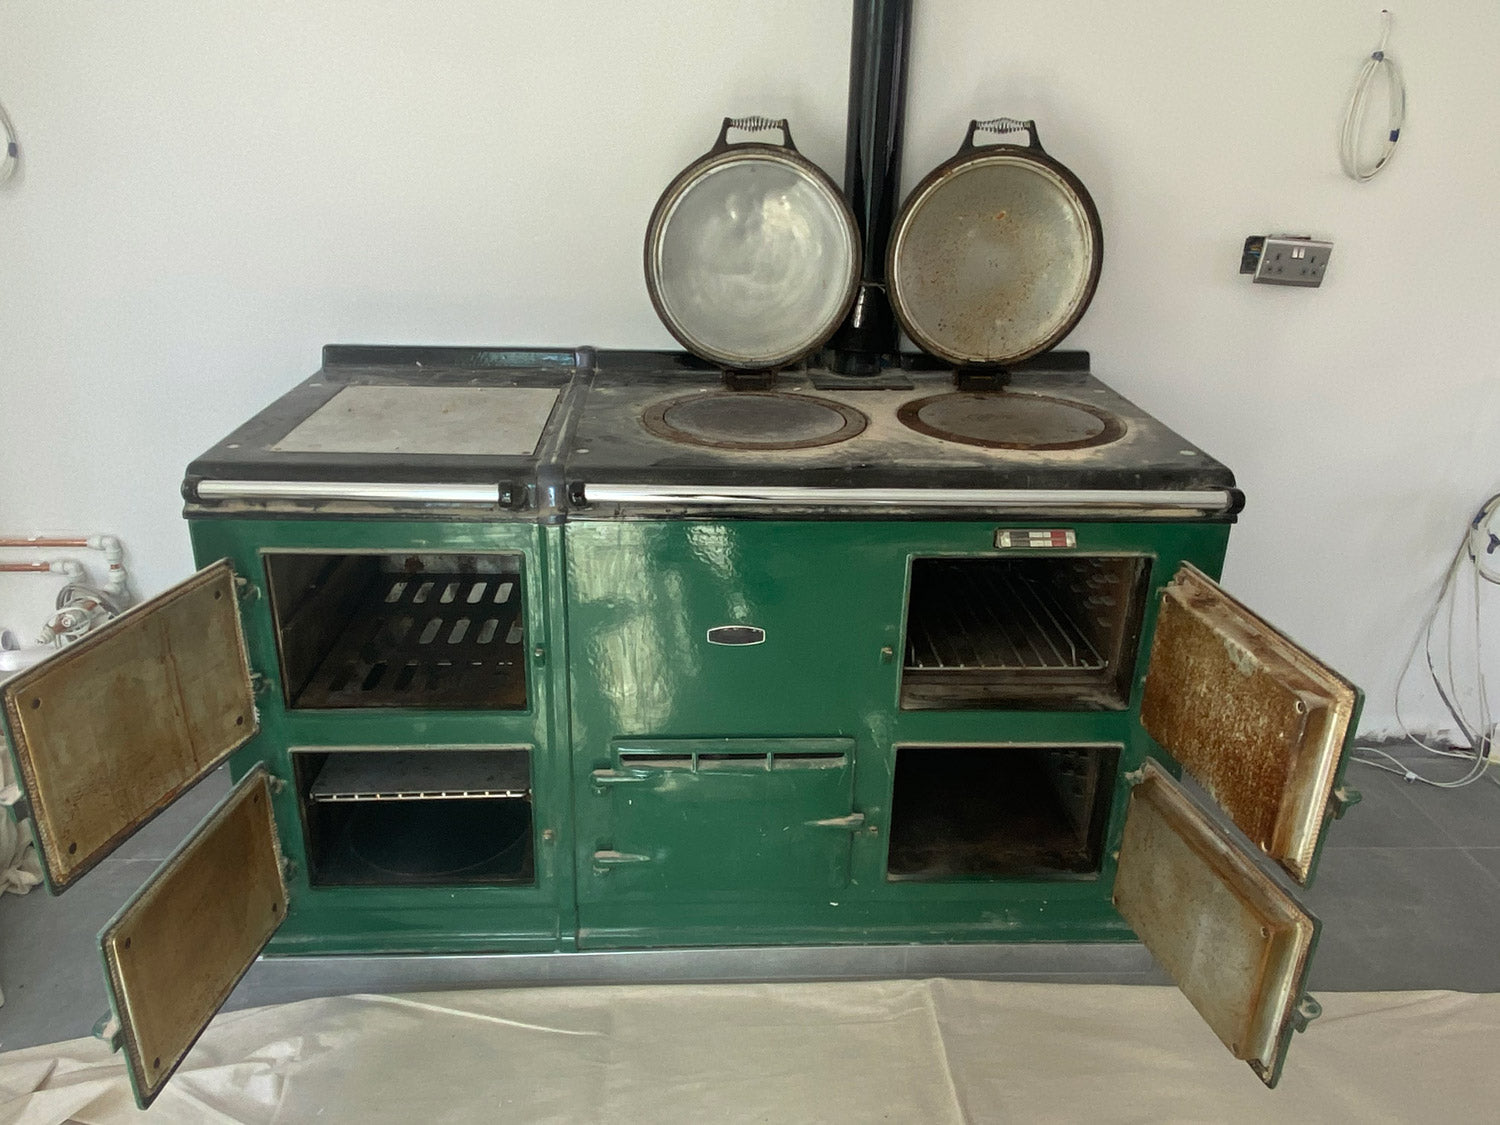 British Racing Green Aga range cooker re-enamelled